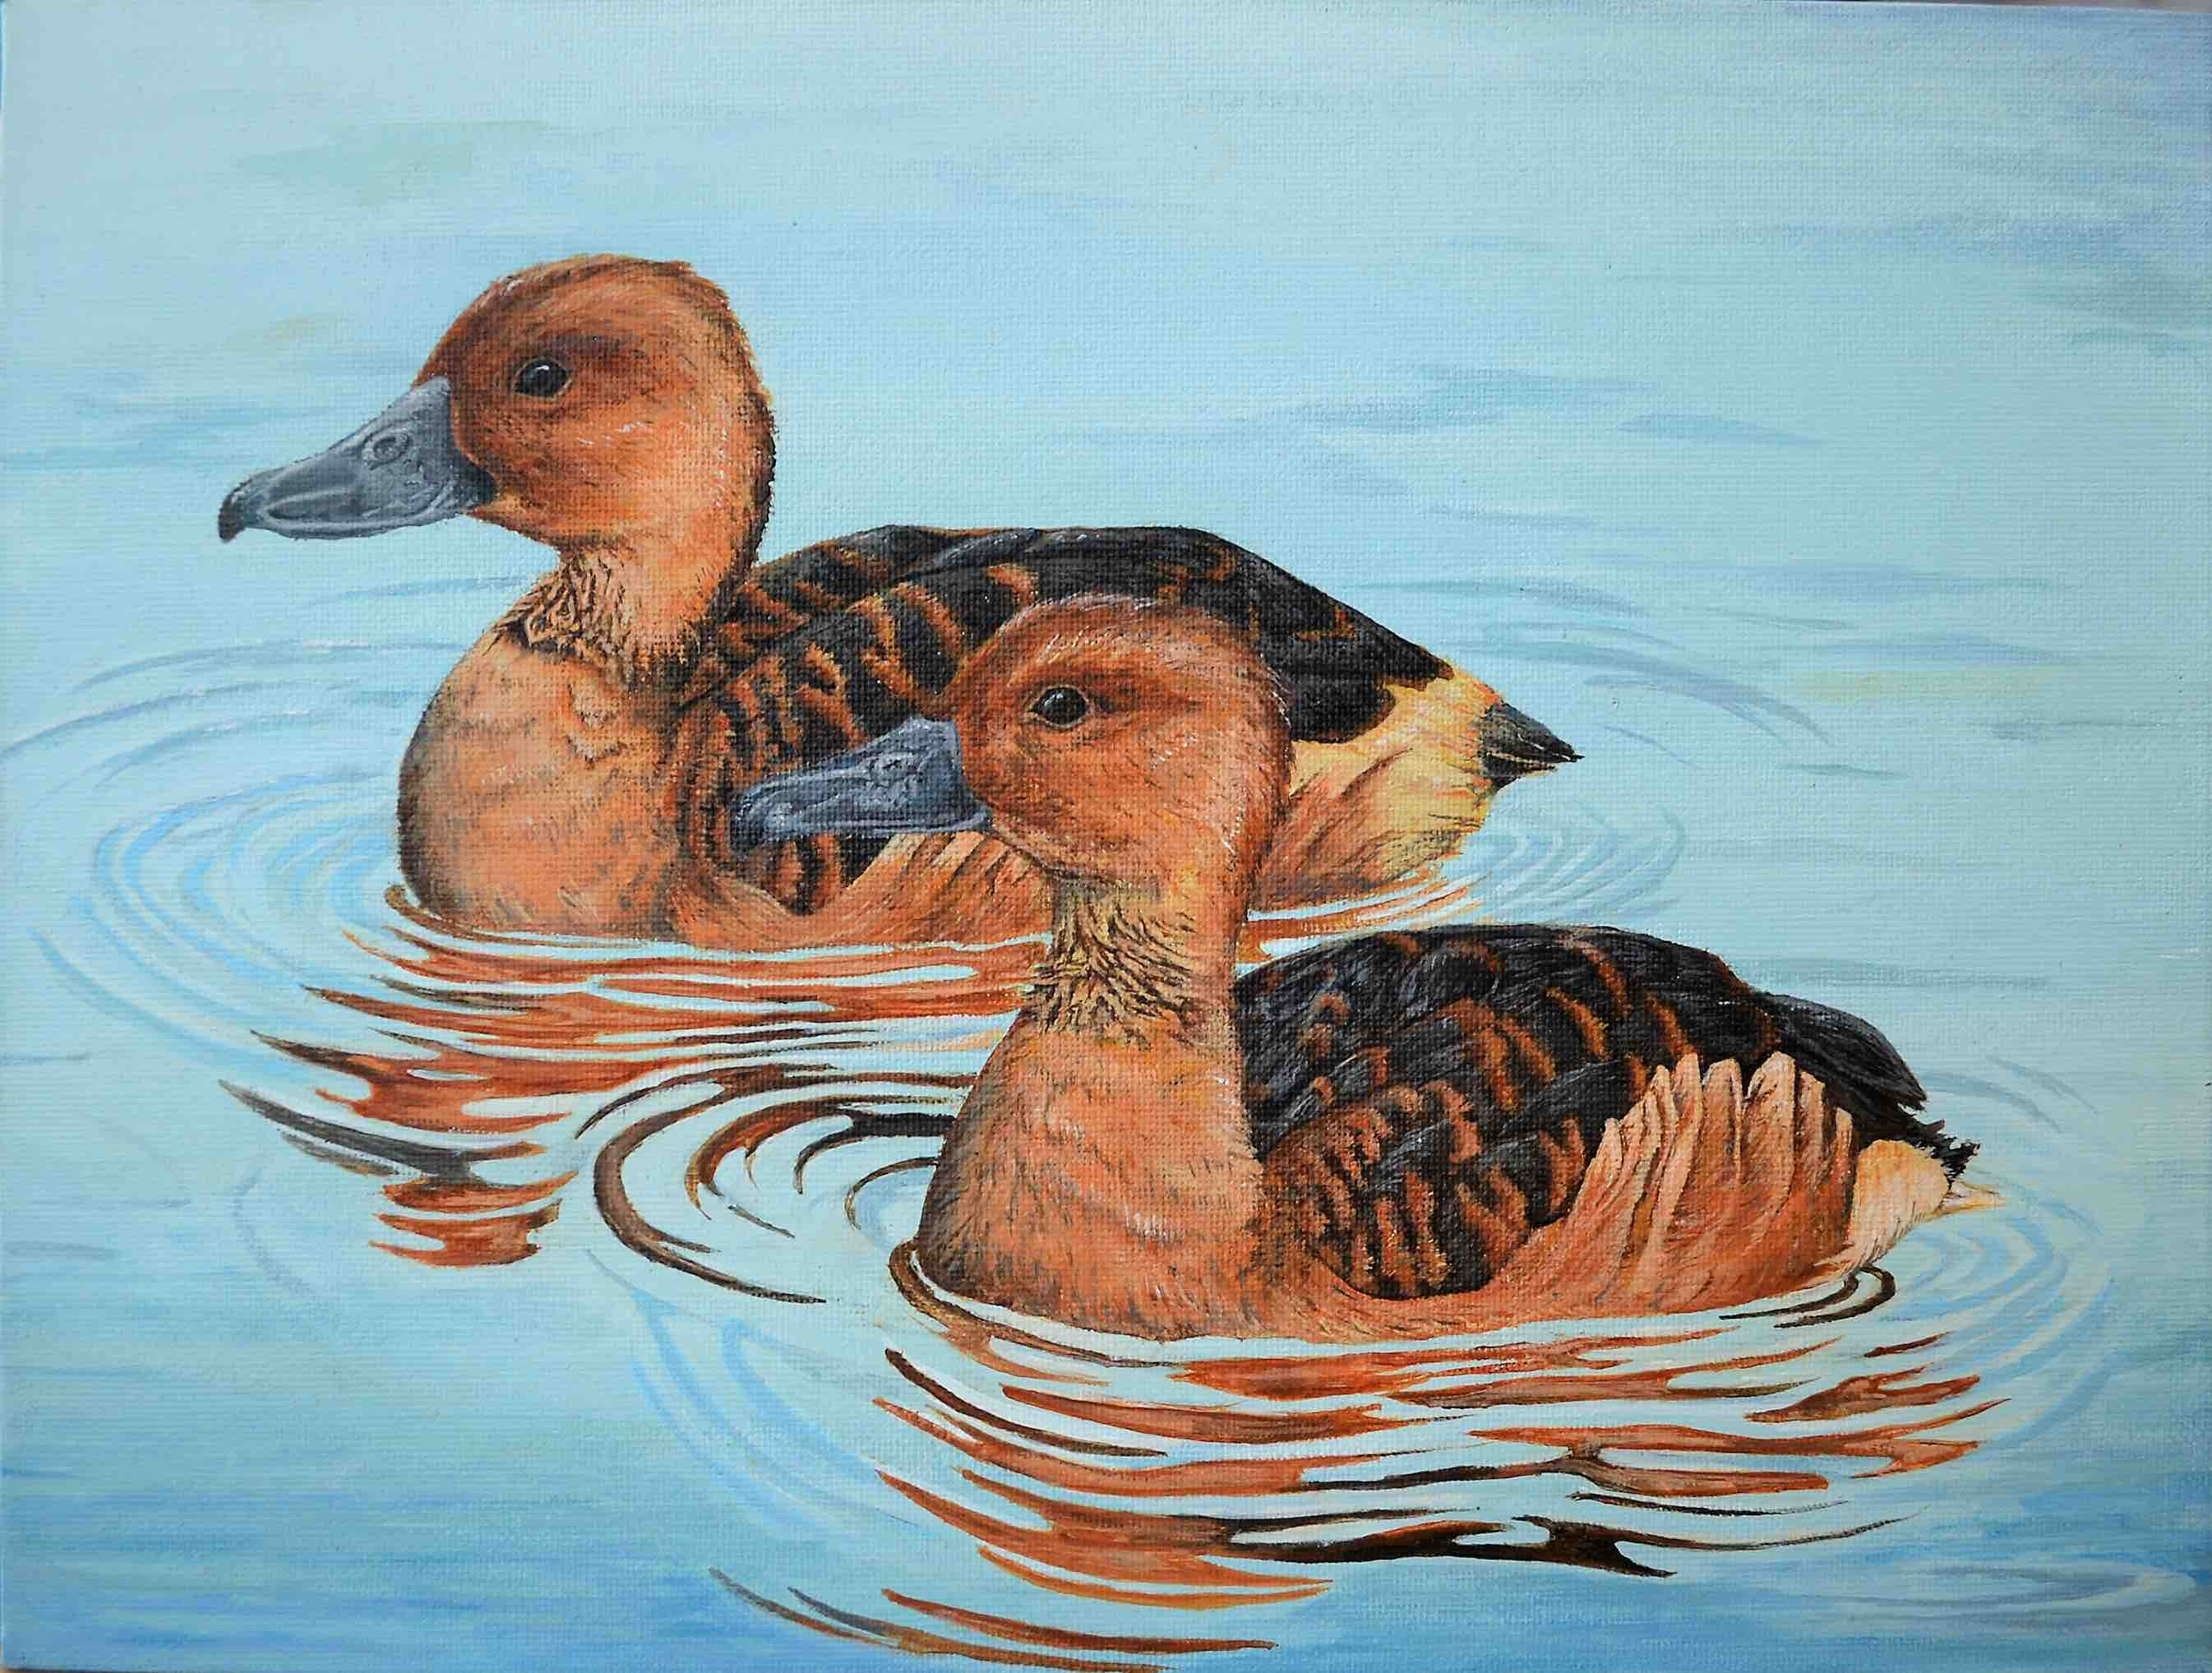 Best in Show for Alaska - Natl Jr. Duck Stamp Competition!